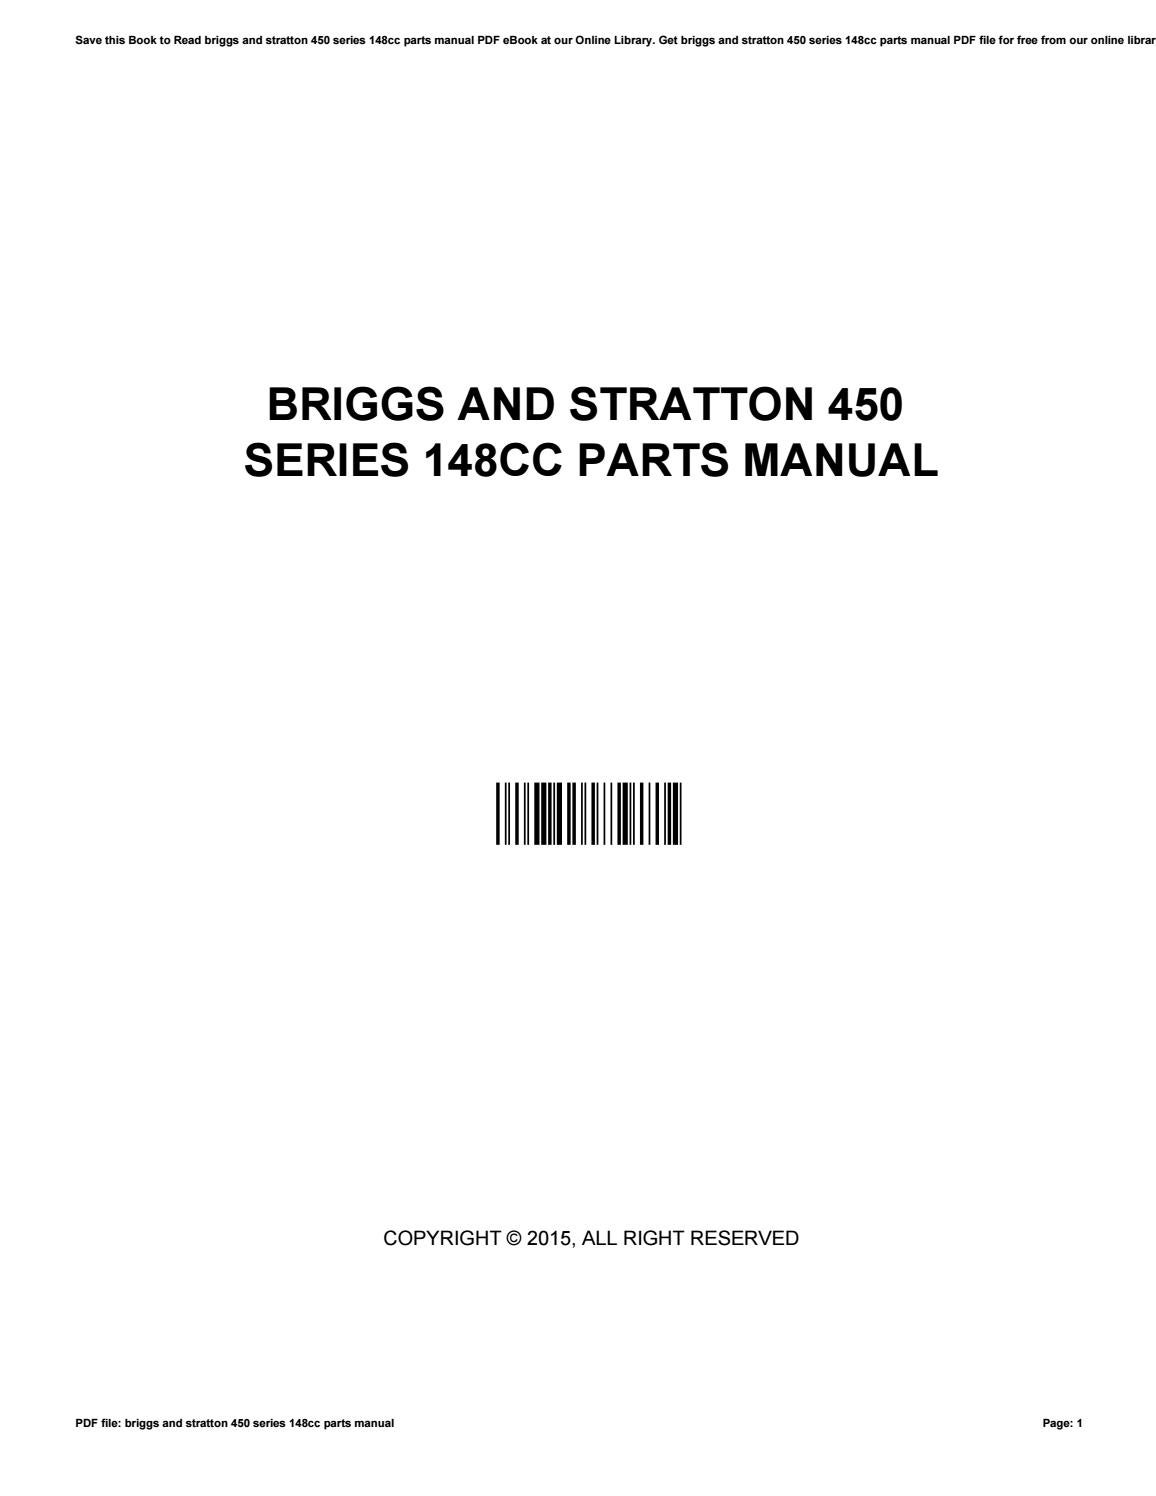 ... Array - briggs and stratton 450 series instructions nemetas aufgegabelt  info rh nemetas aufgegabelt info